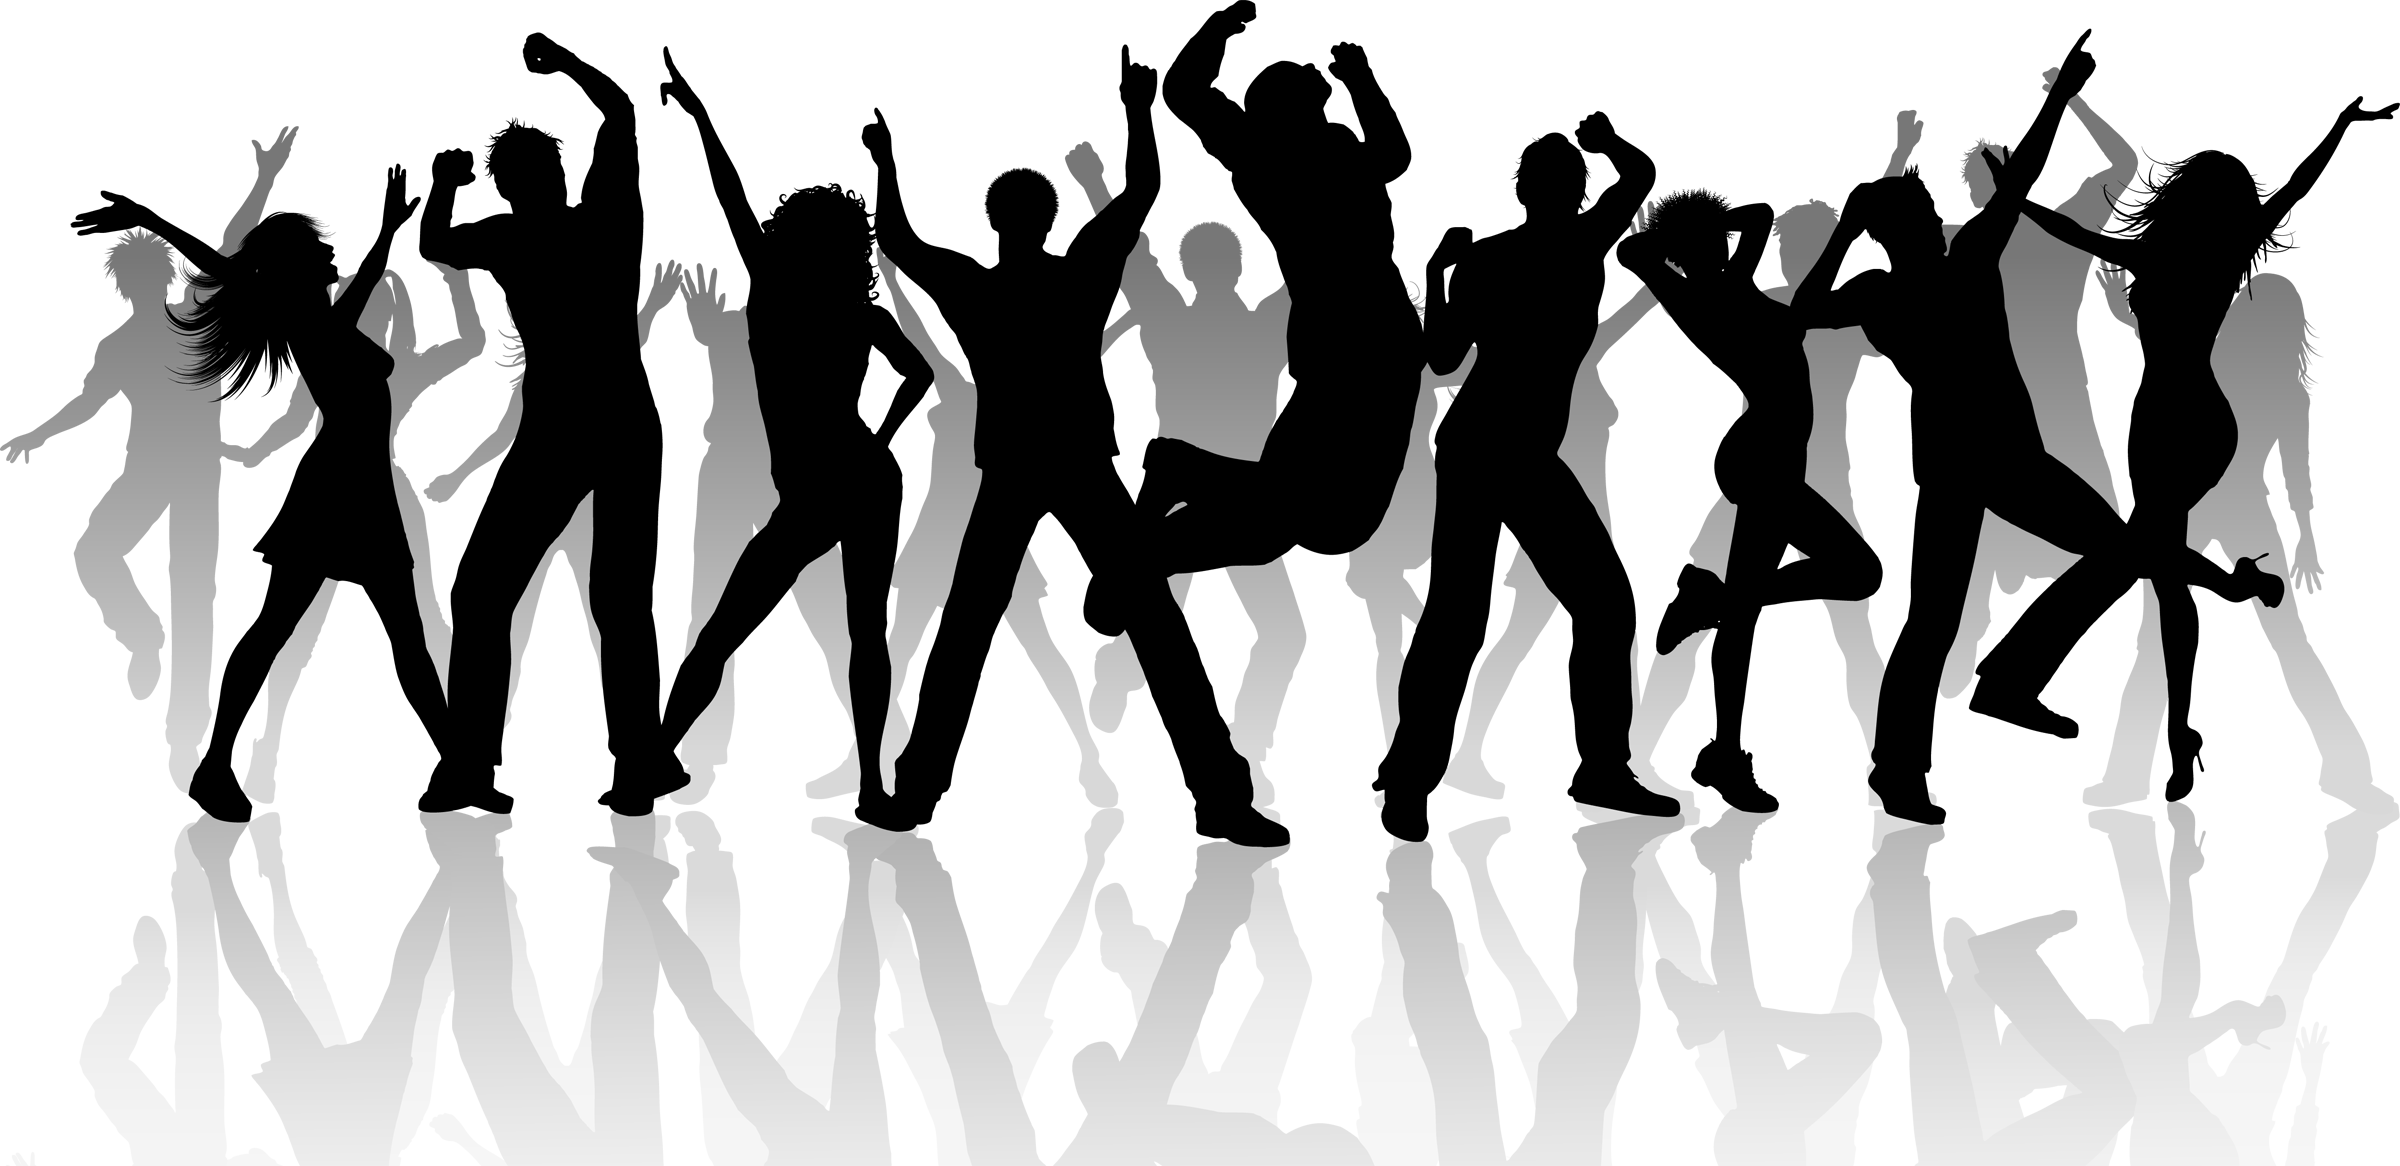 Person dancing hd transparent. Dance team png clip freeuse stock